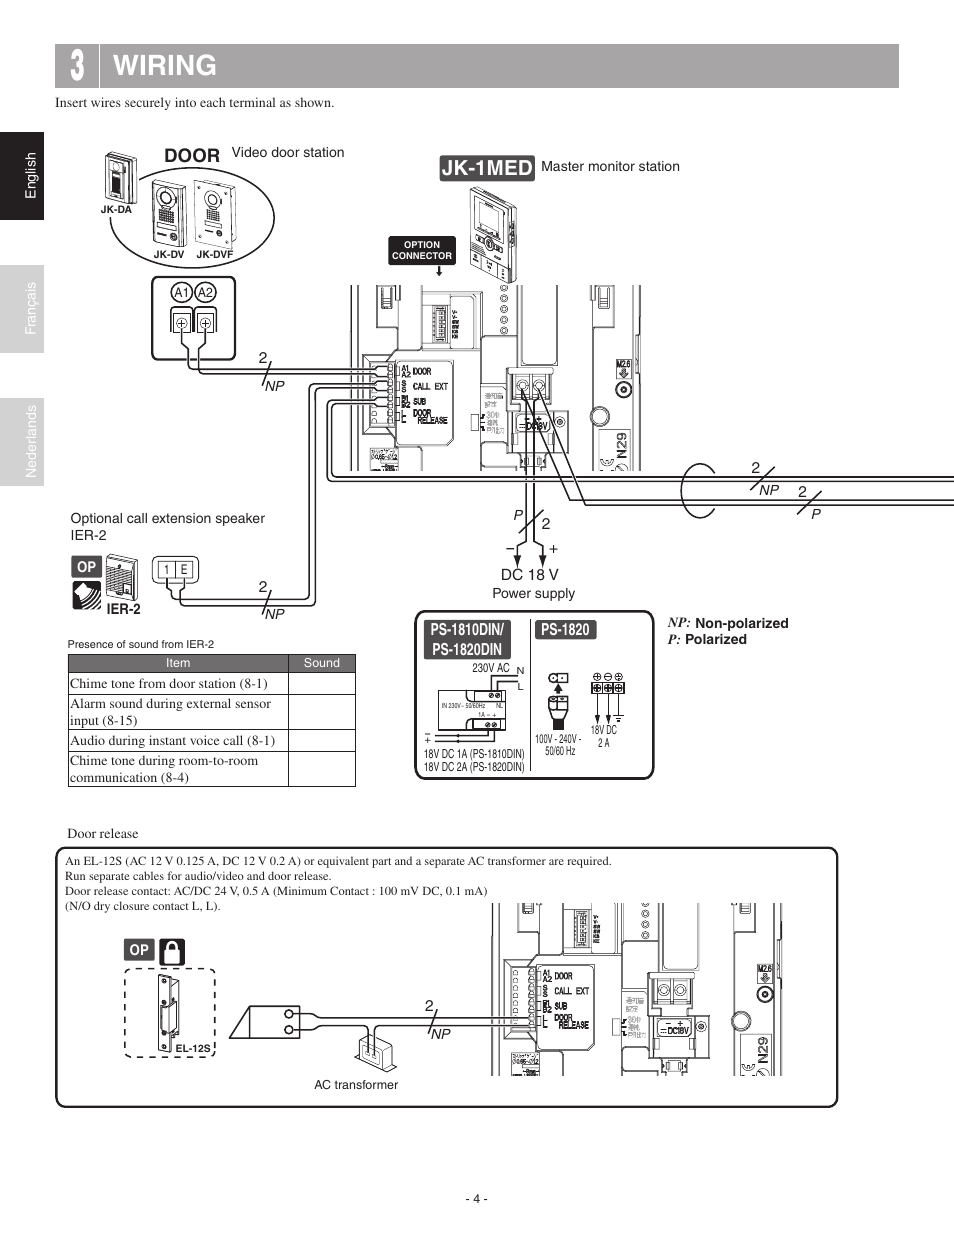 aiphone wire diagram lawn tractor ign switch wire diagram five wire wiring, jk-1hd, jk-1med | aiphone jk-1med user manual ...